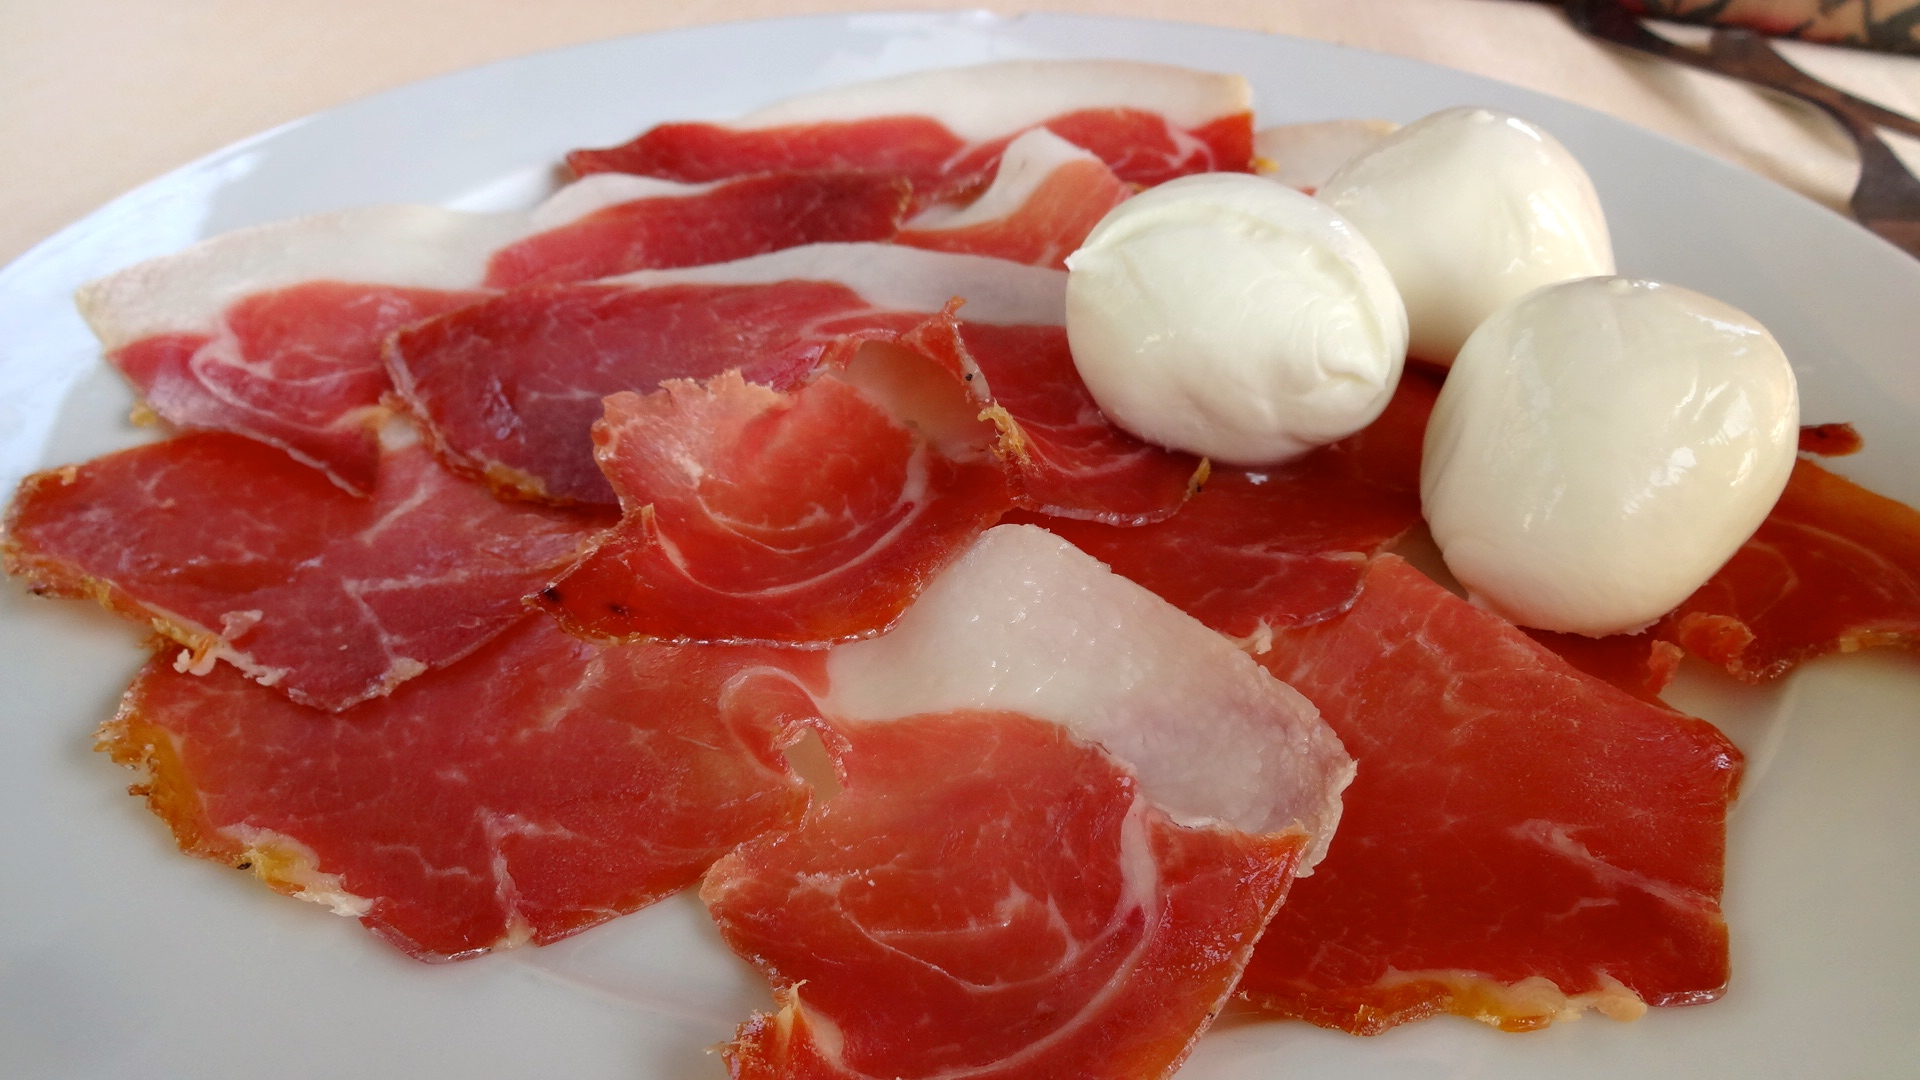 ... Mozzarelle di Bufala (Cured Meat and Buffalo Mozzarella Cheese